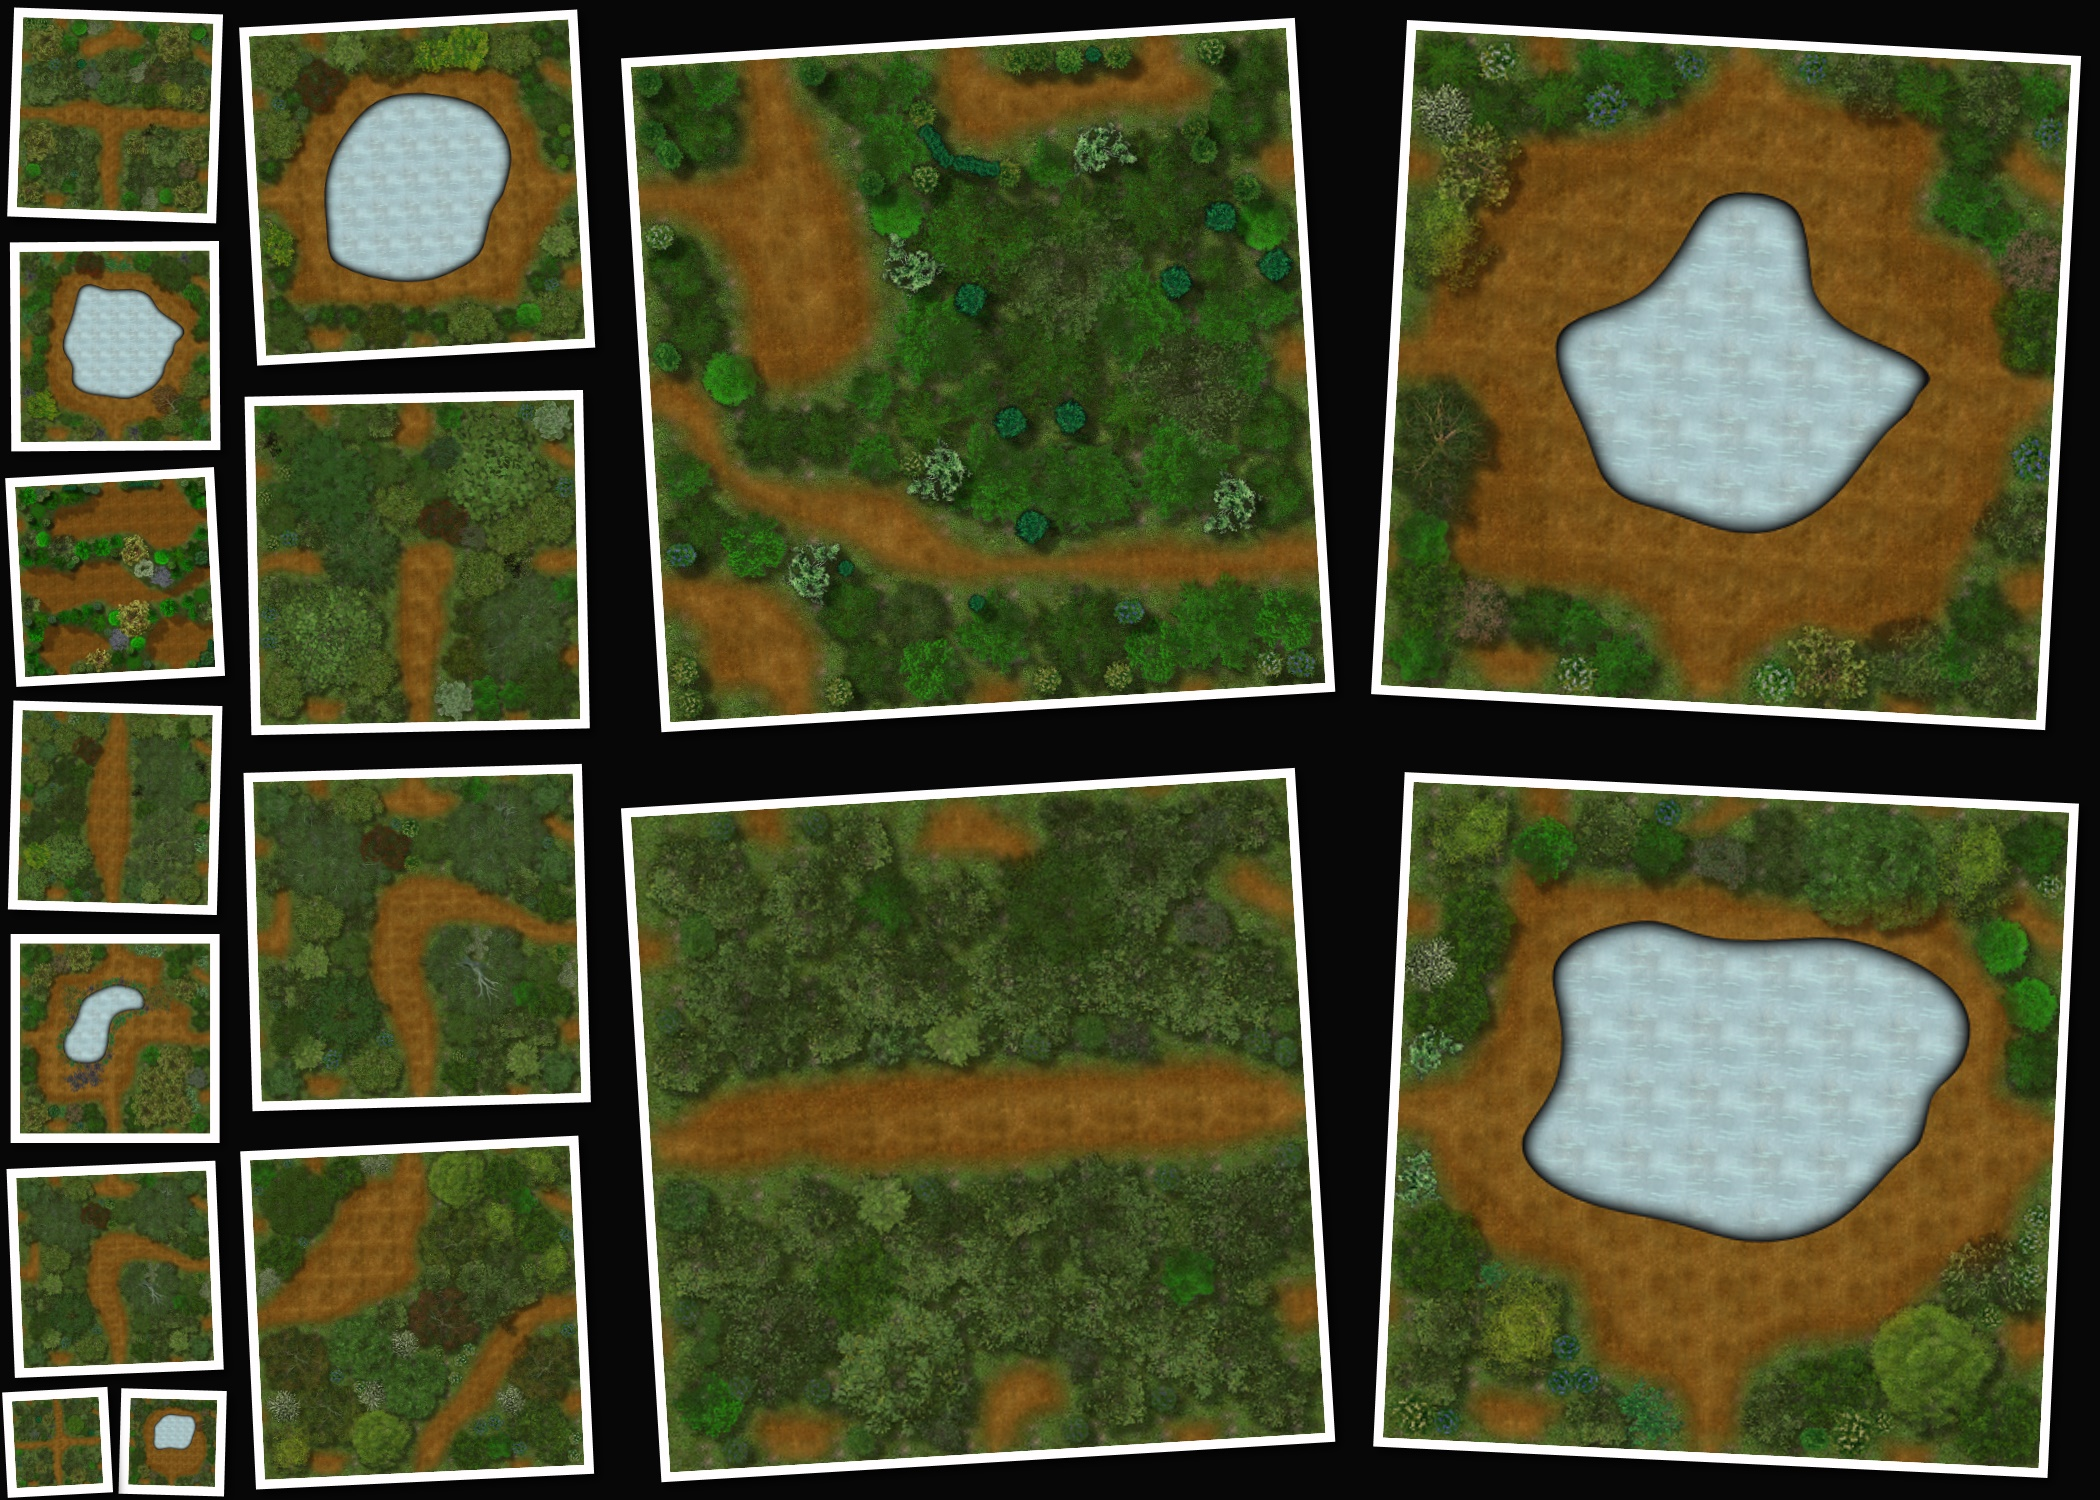 Geomorphic Cartography - Lots of prototyping around this project… more information to come later in the year most likely!